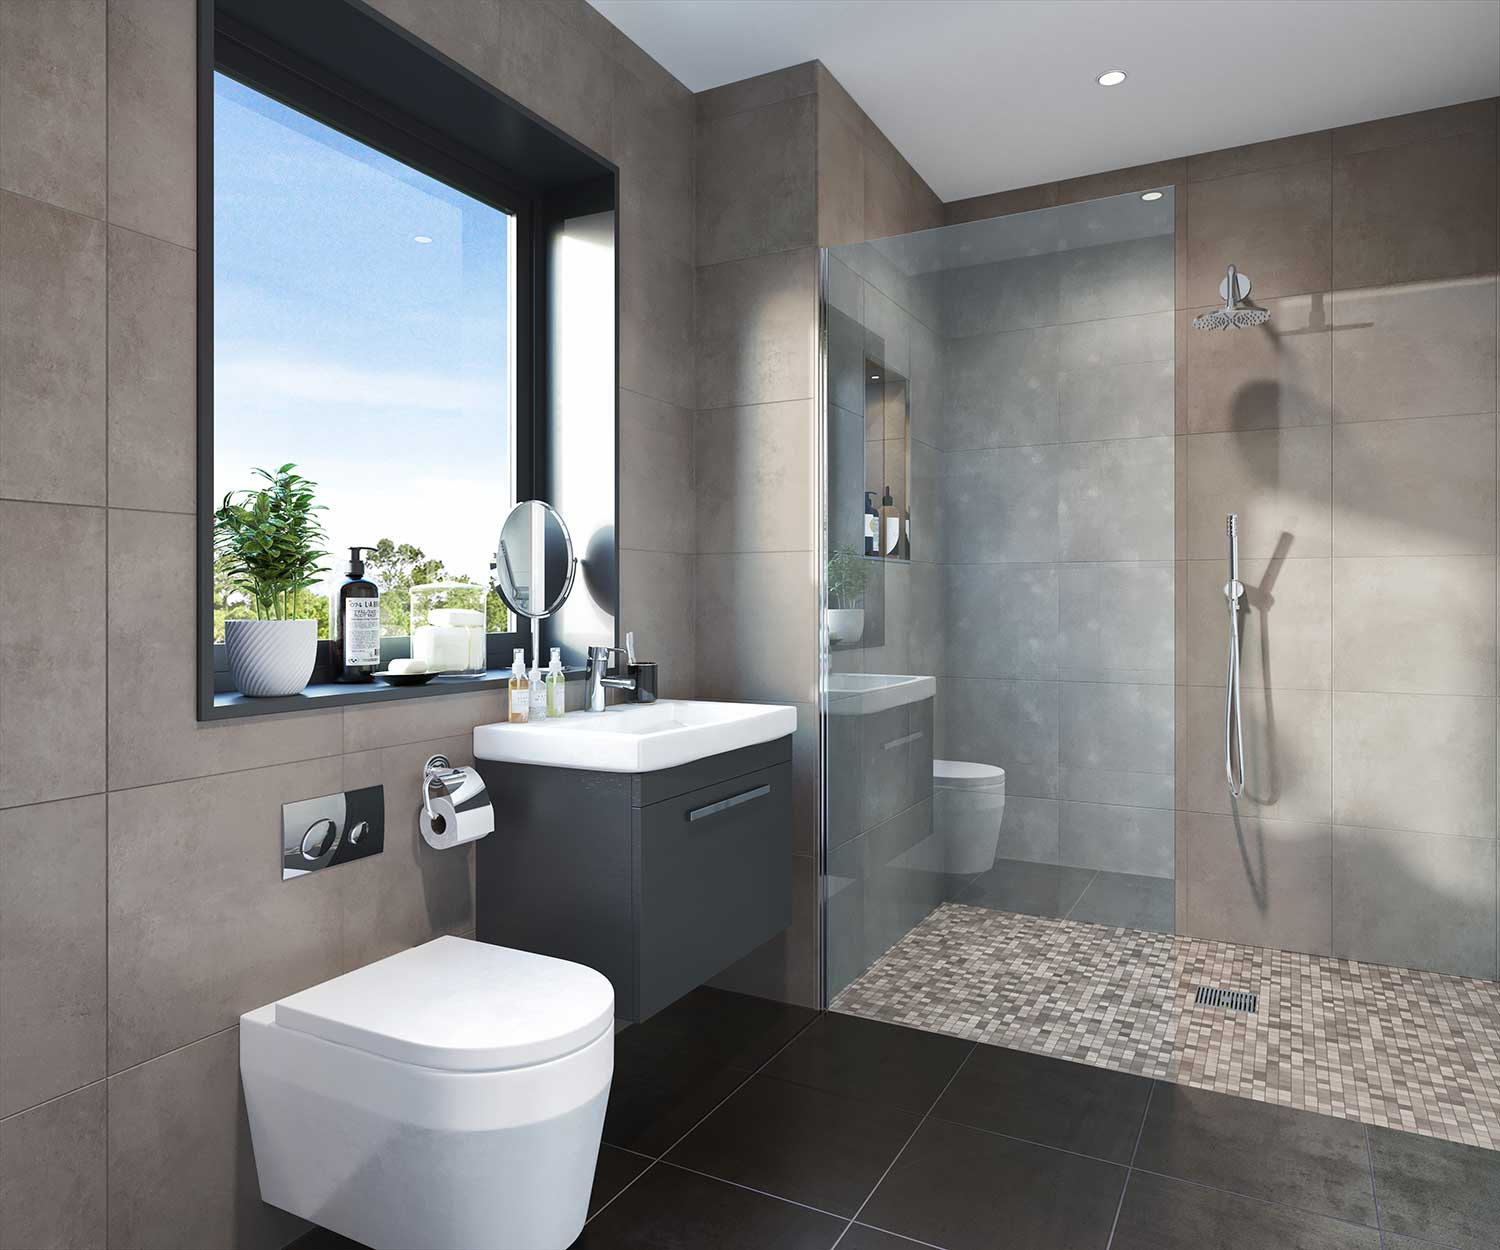 Luxury bathrooms for apartments in Weyhill, Haslemere